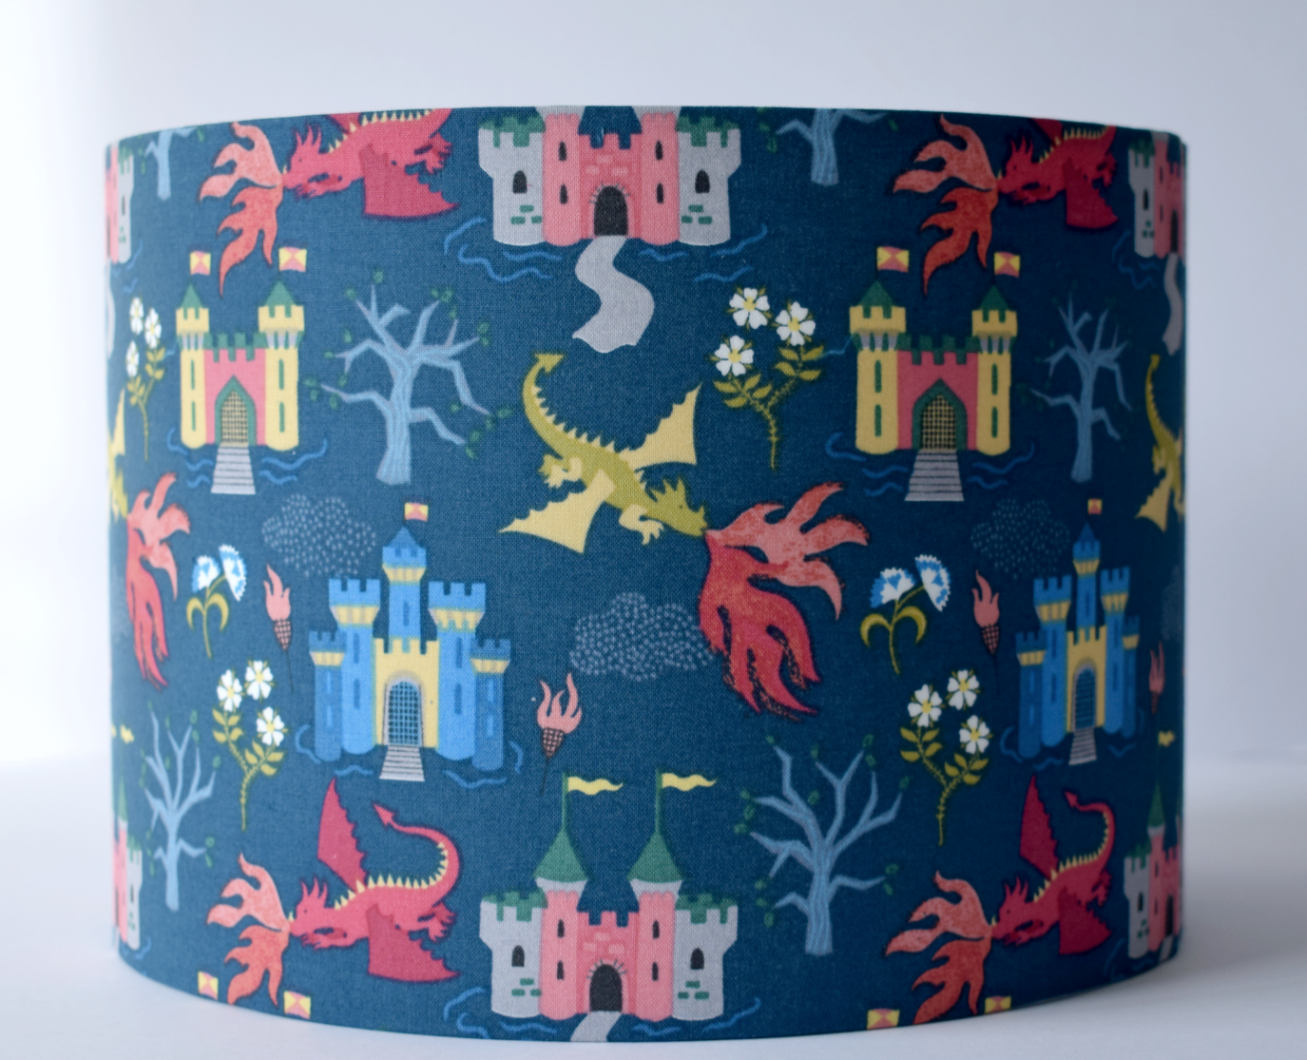 Blue Dragon Lampshade, Mythical Dragon Bedroom Decor